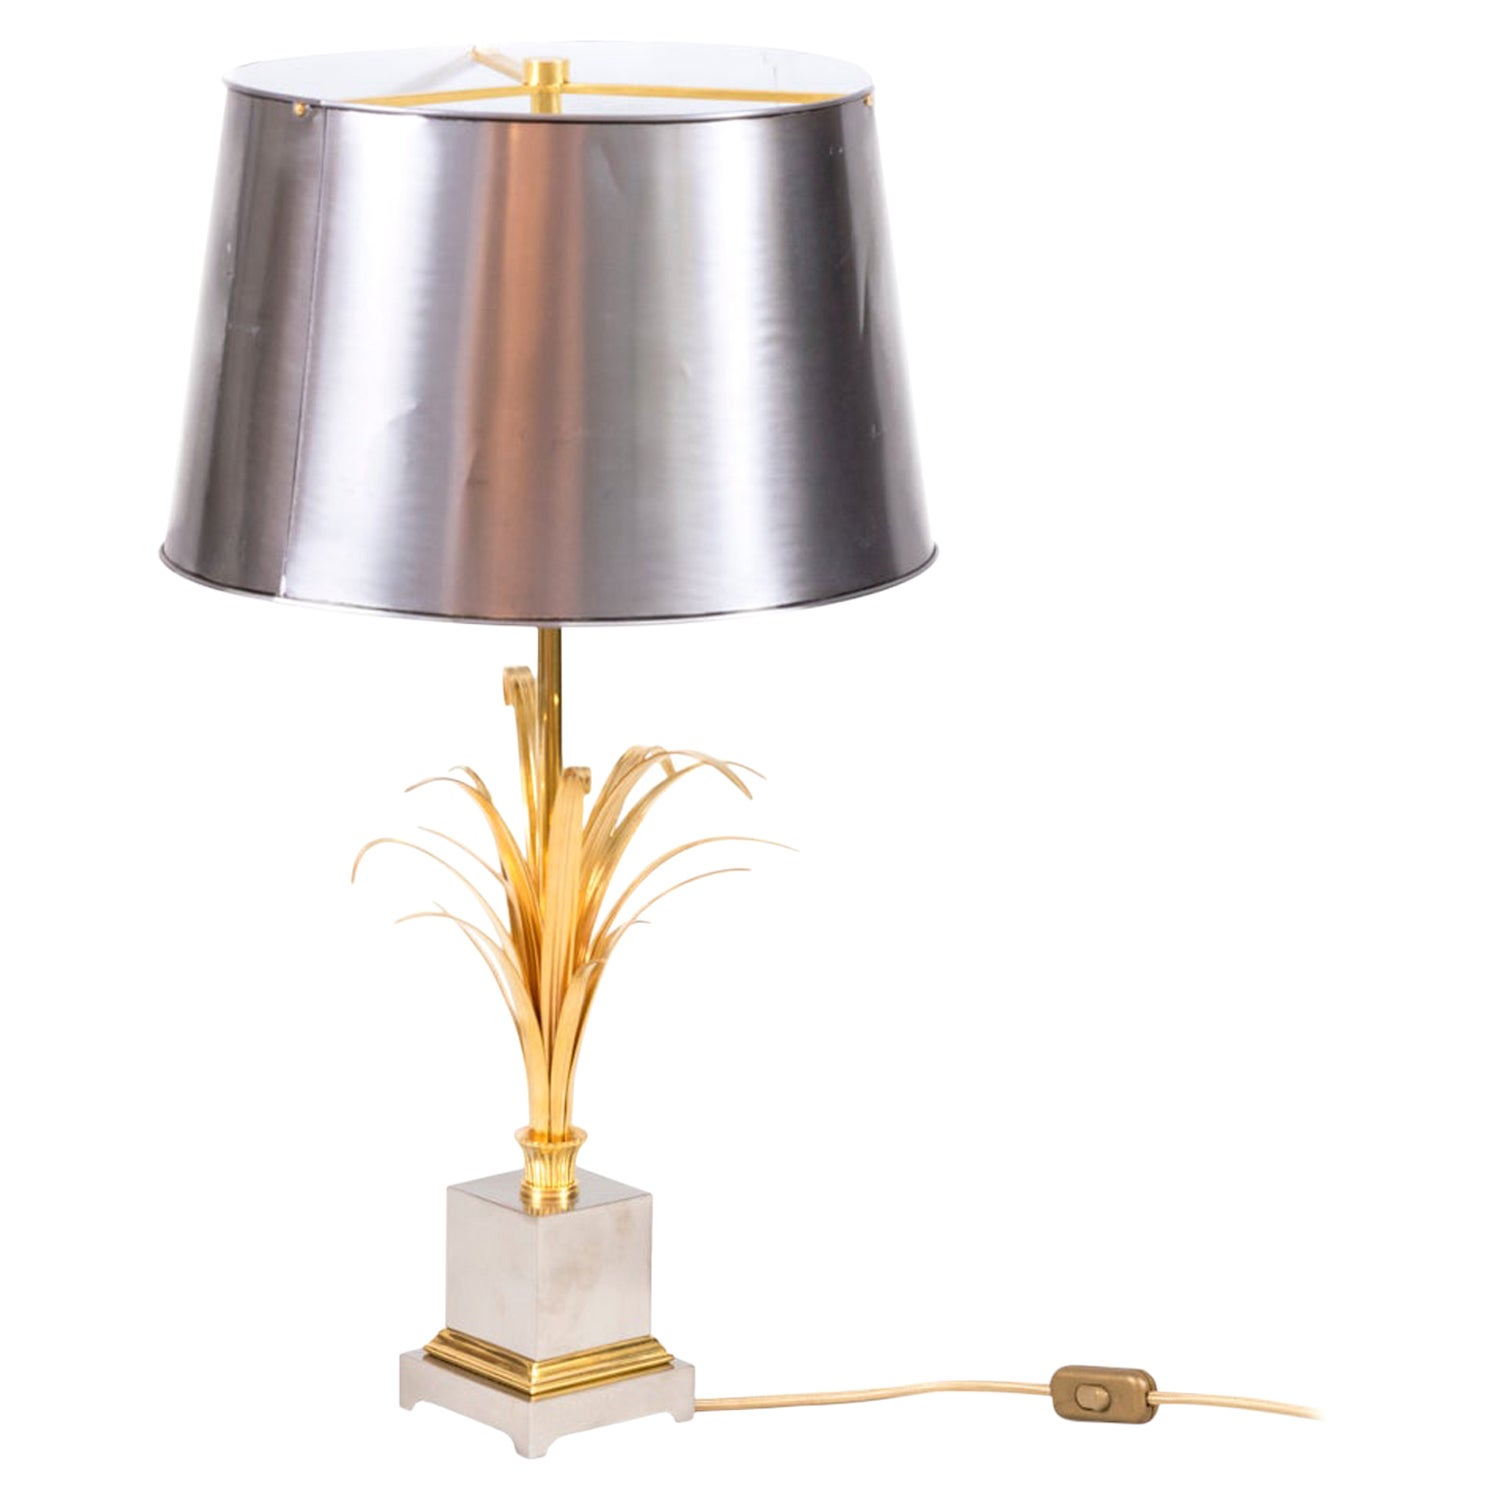 Maison Charles, Reeds Lamp in Gilt and Silvered Bronze, 1970s